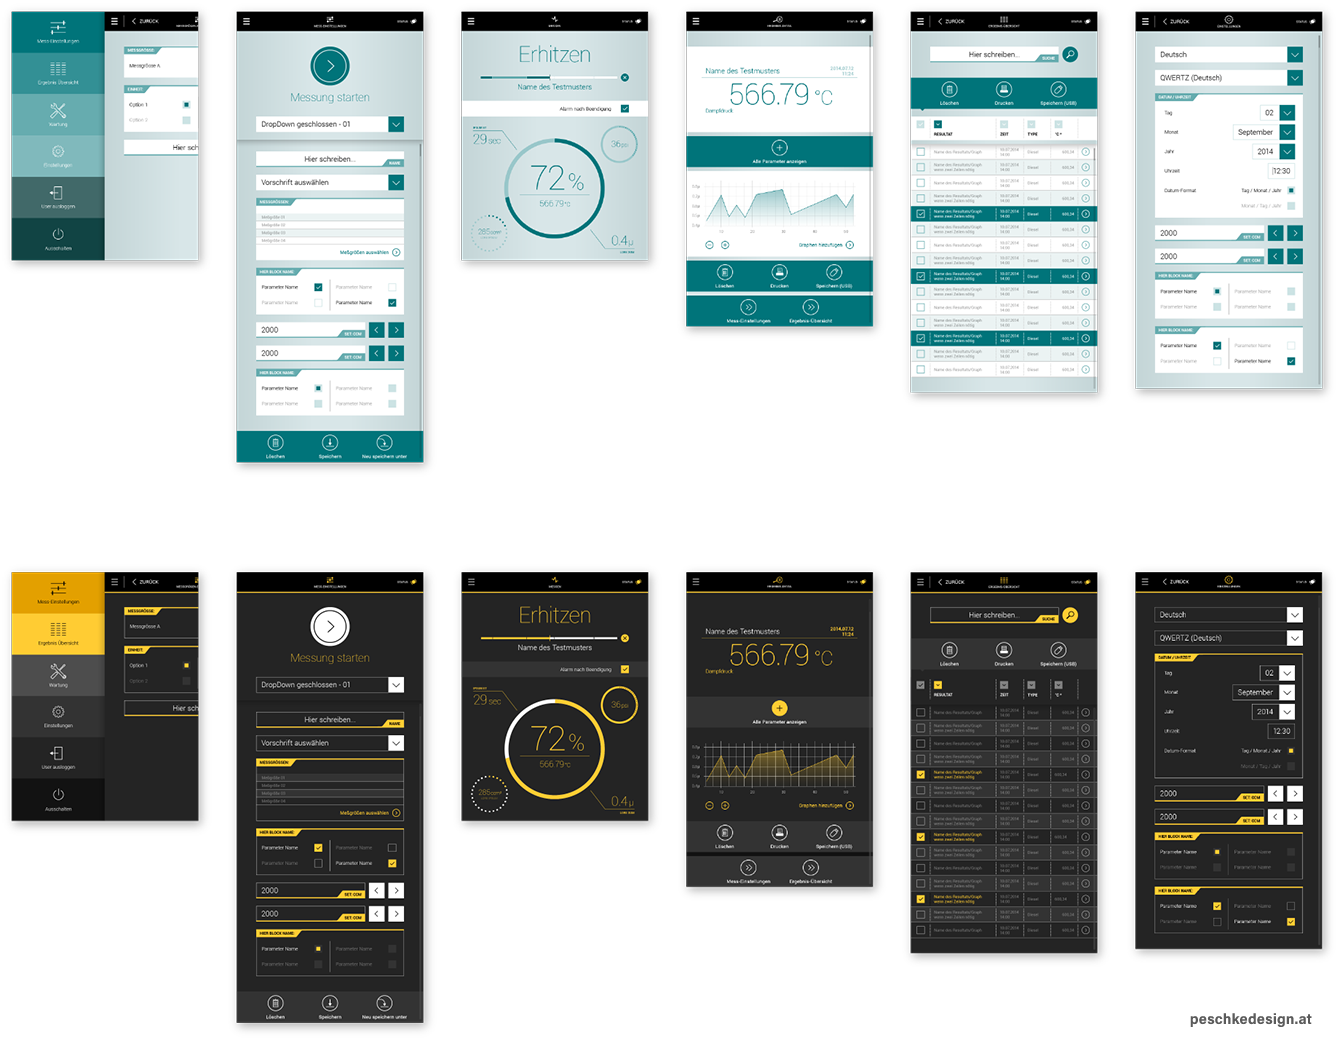 Two colour schemes for hmi visual design - day mode and dark mode.